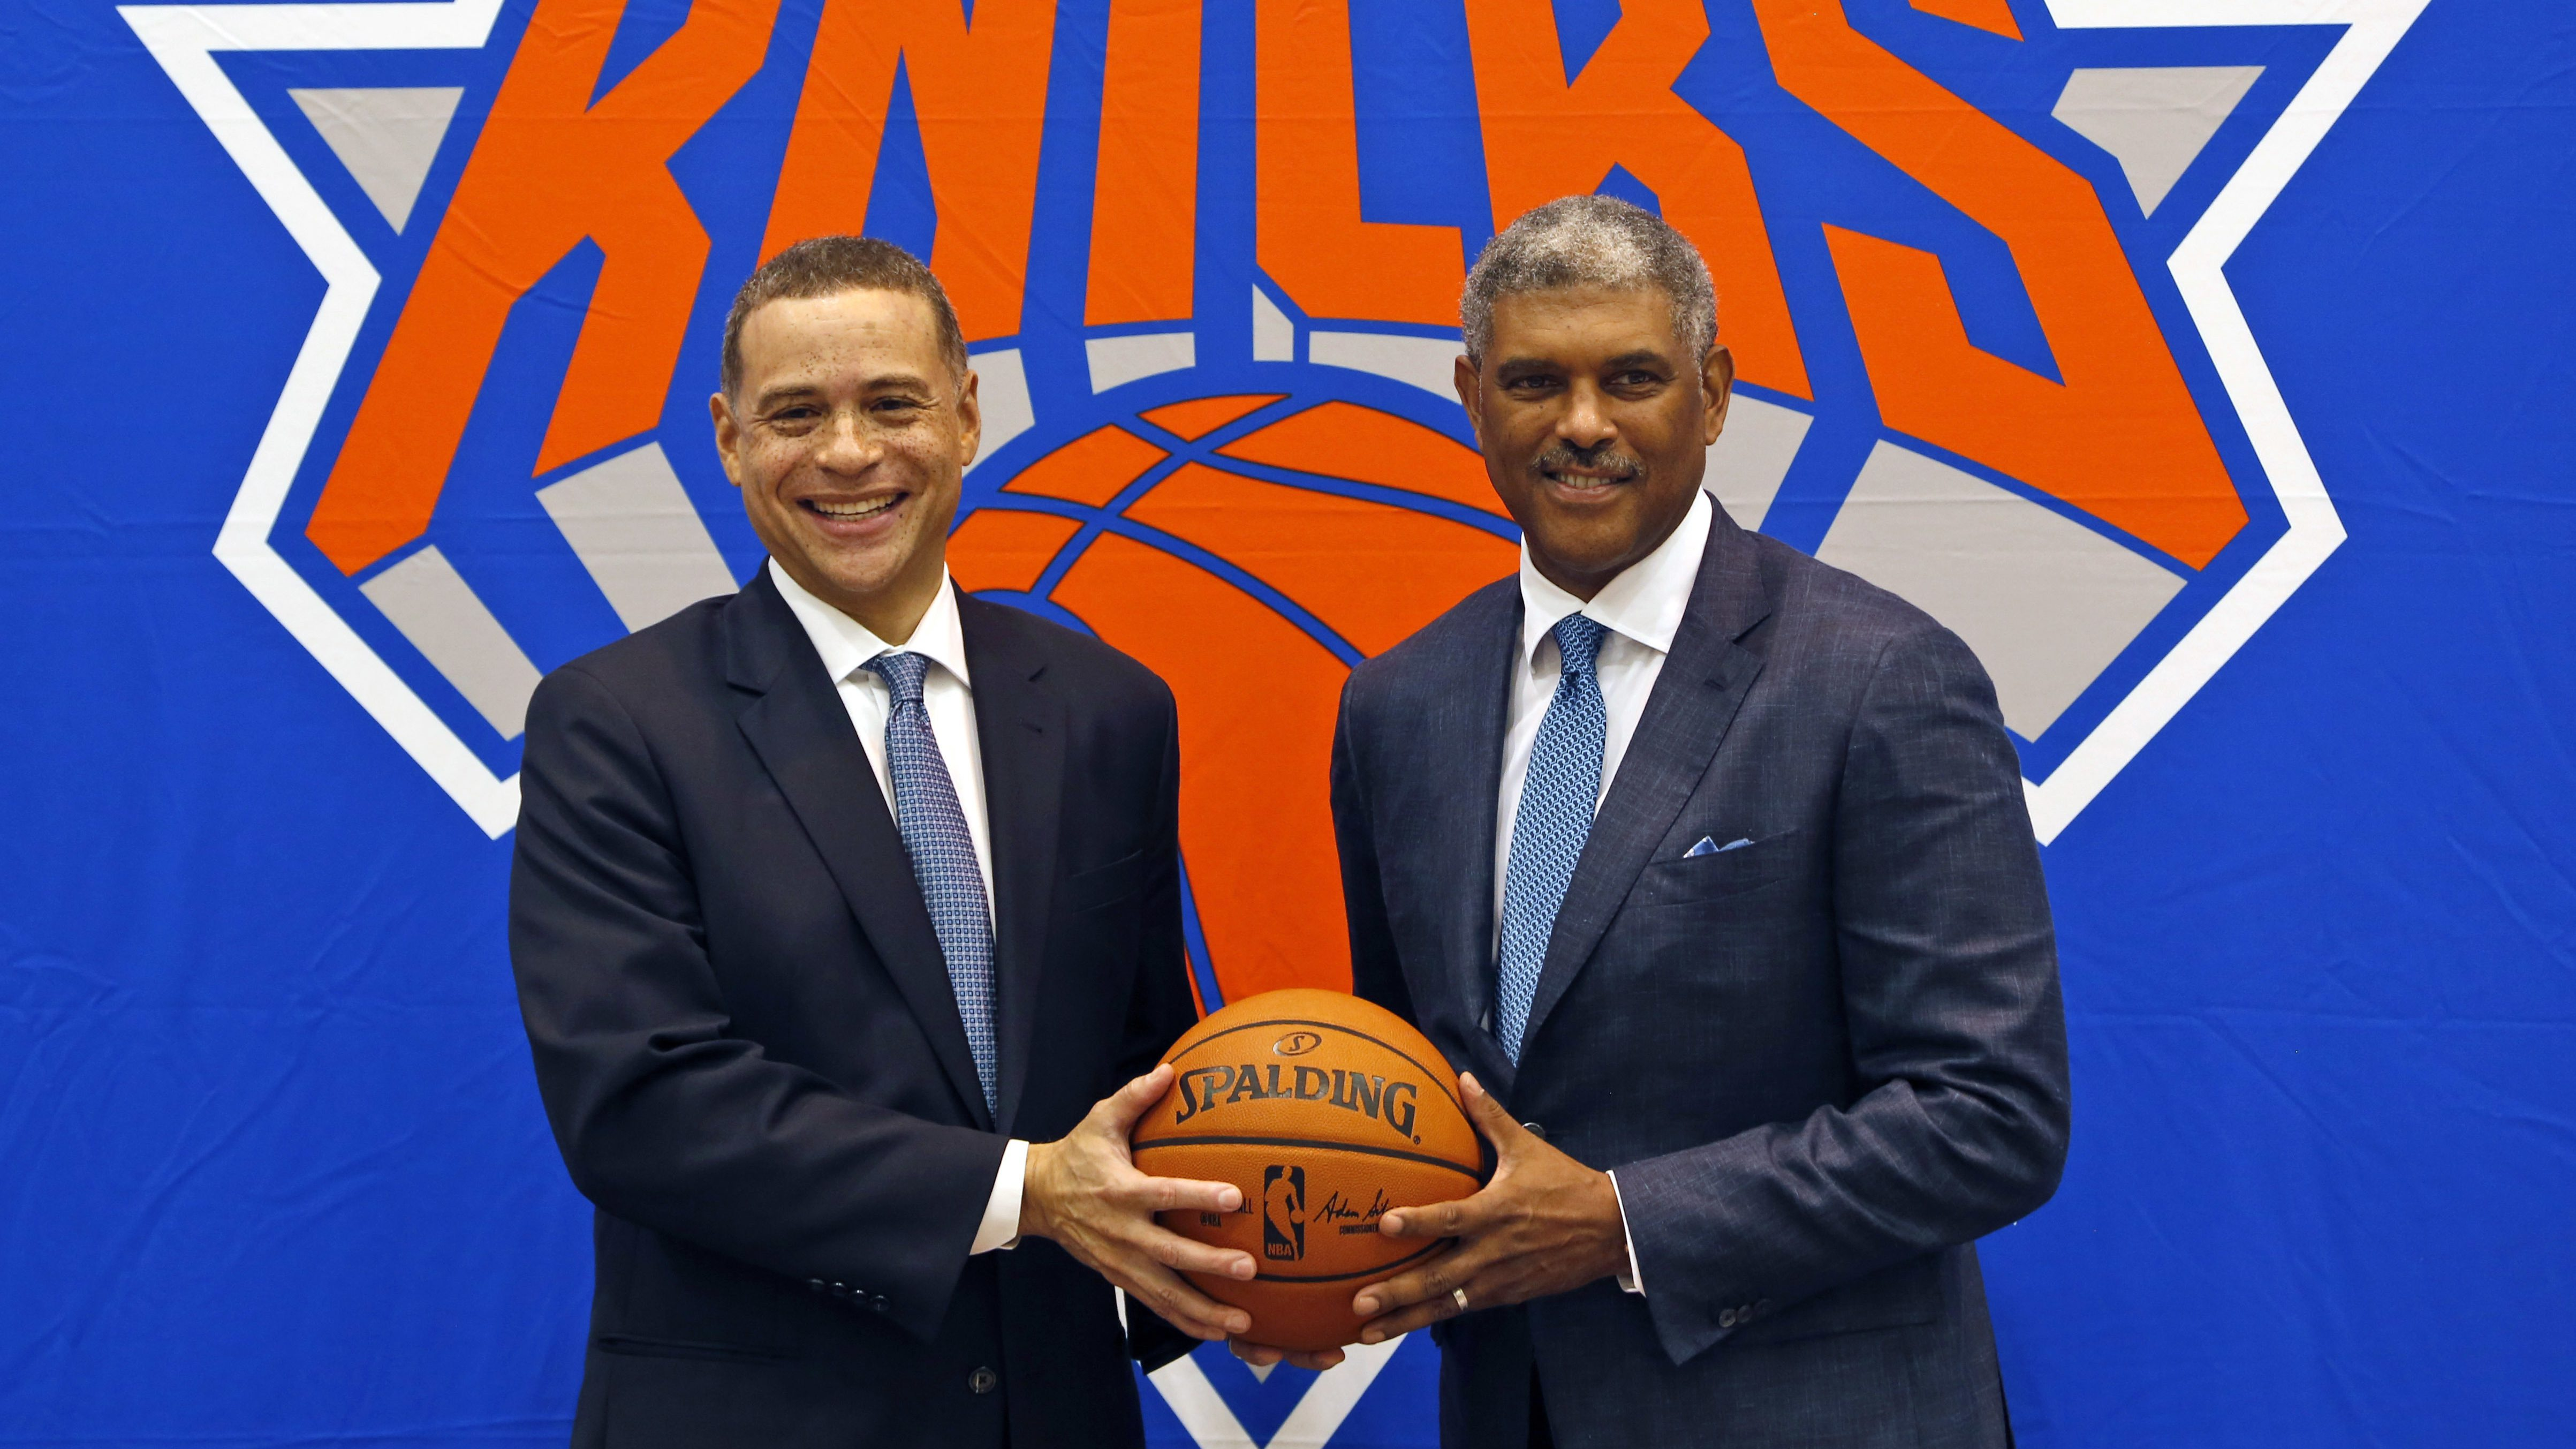 African Americans Dominate Executive Roles With Knicks A Rare